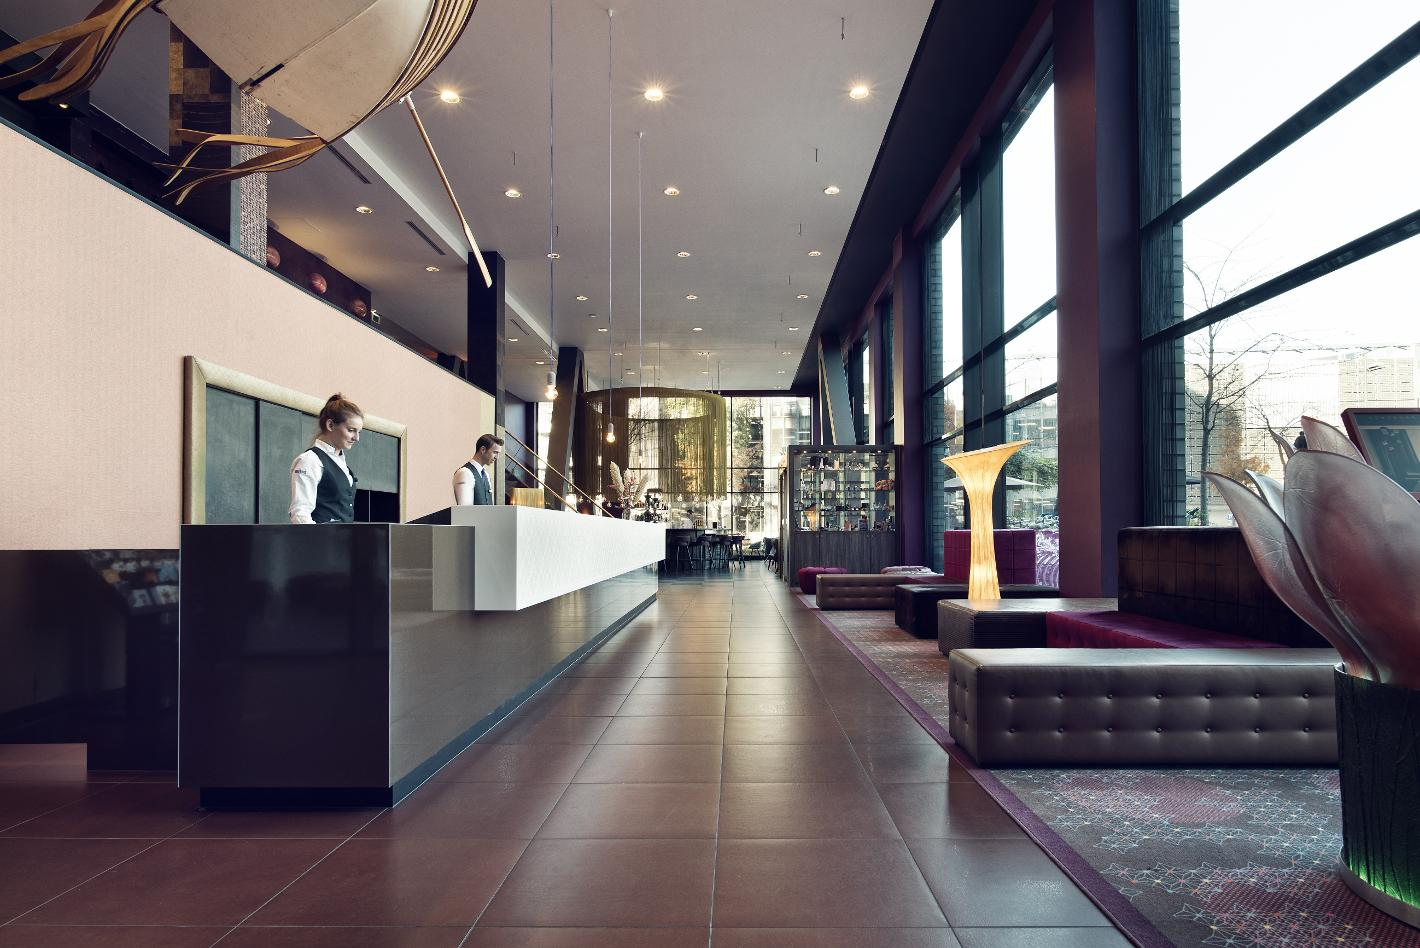 Photo Inntel Hotels Art Eindhoven in Eindhoven, Sleep, Hotels & accommodations - #5